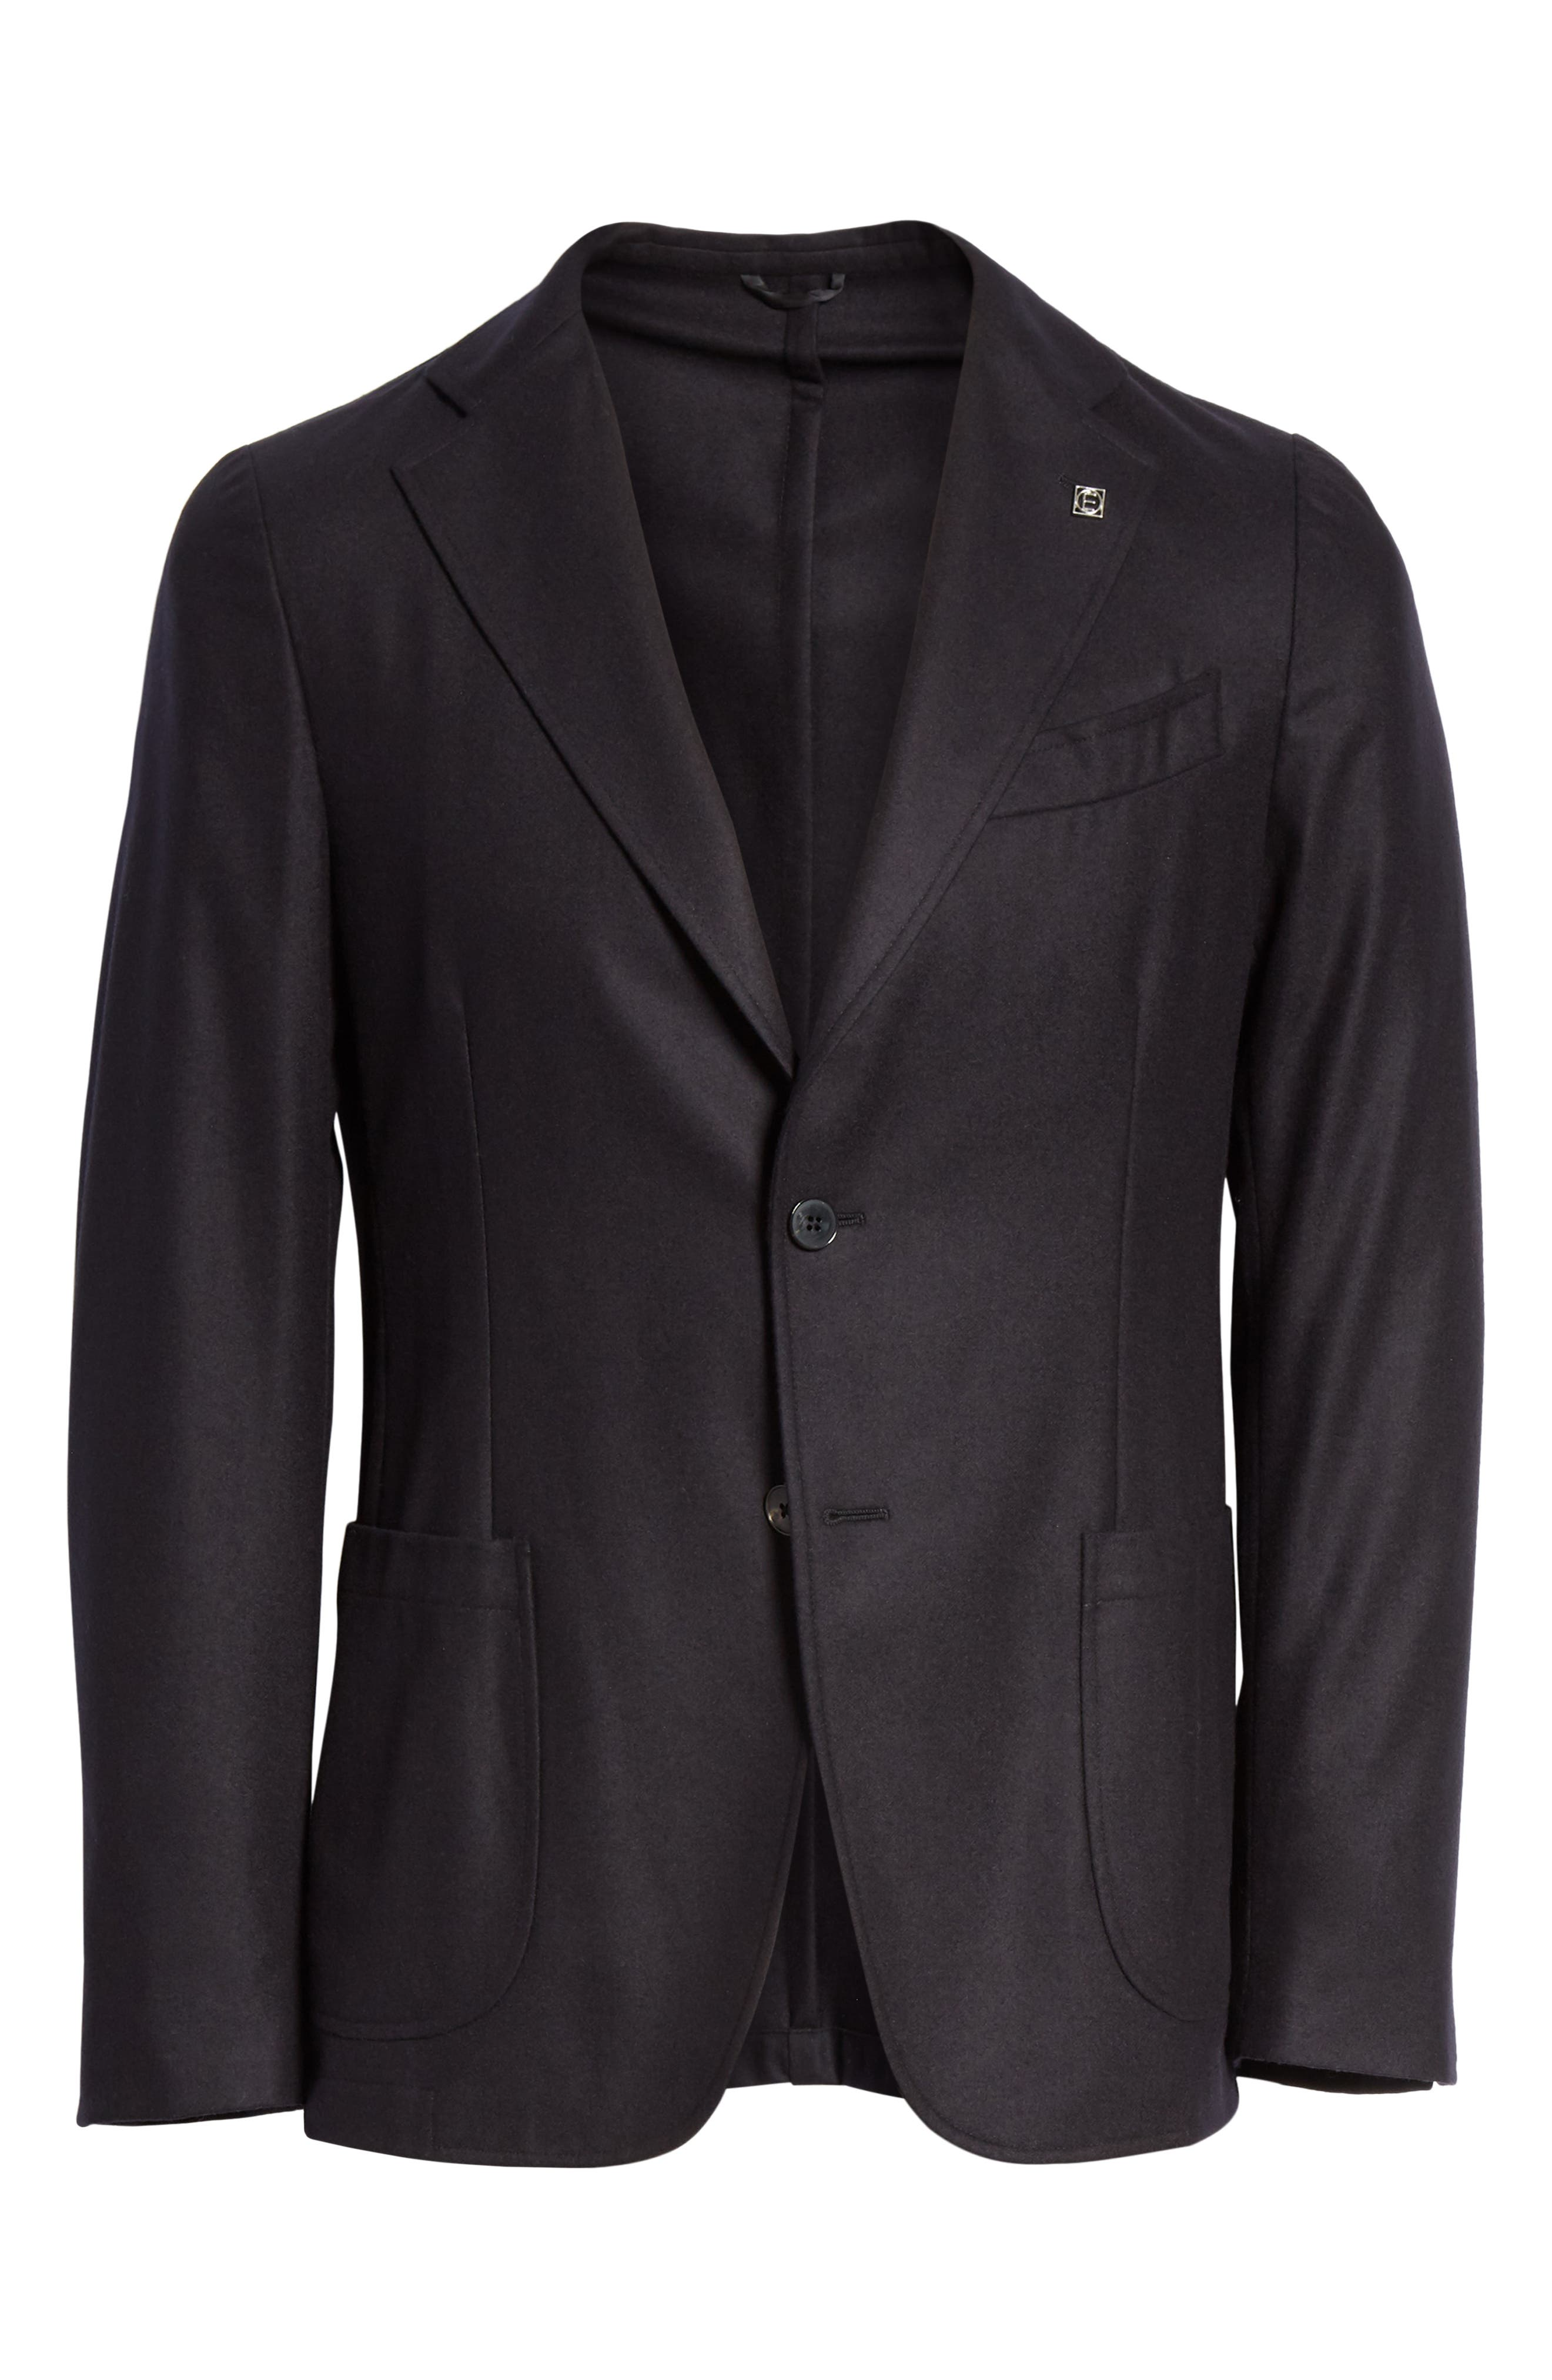 EIDOS Trim Fit Wool Blazer in Black